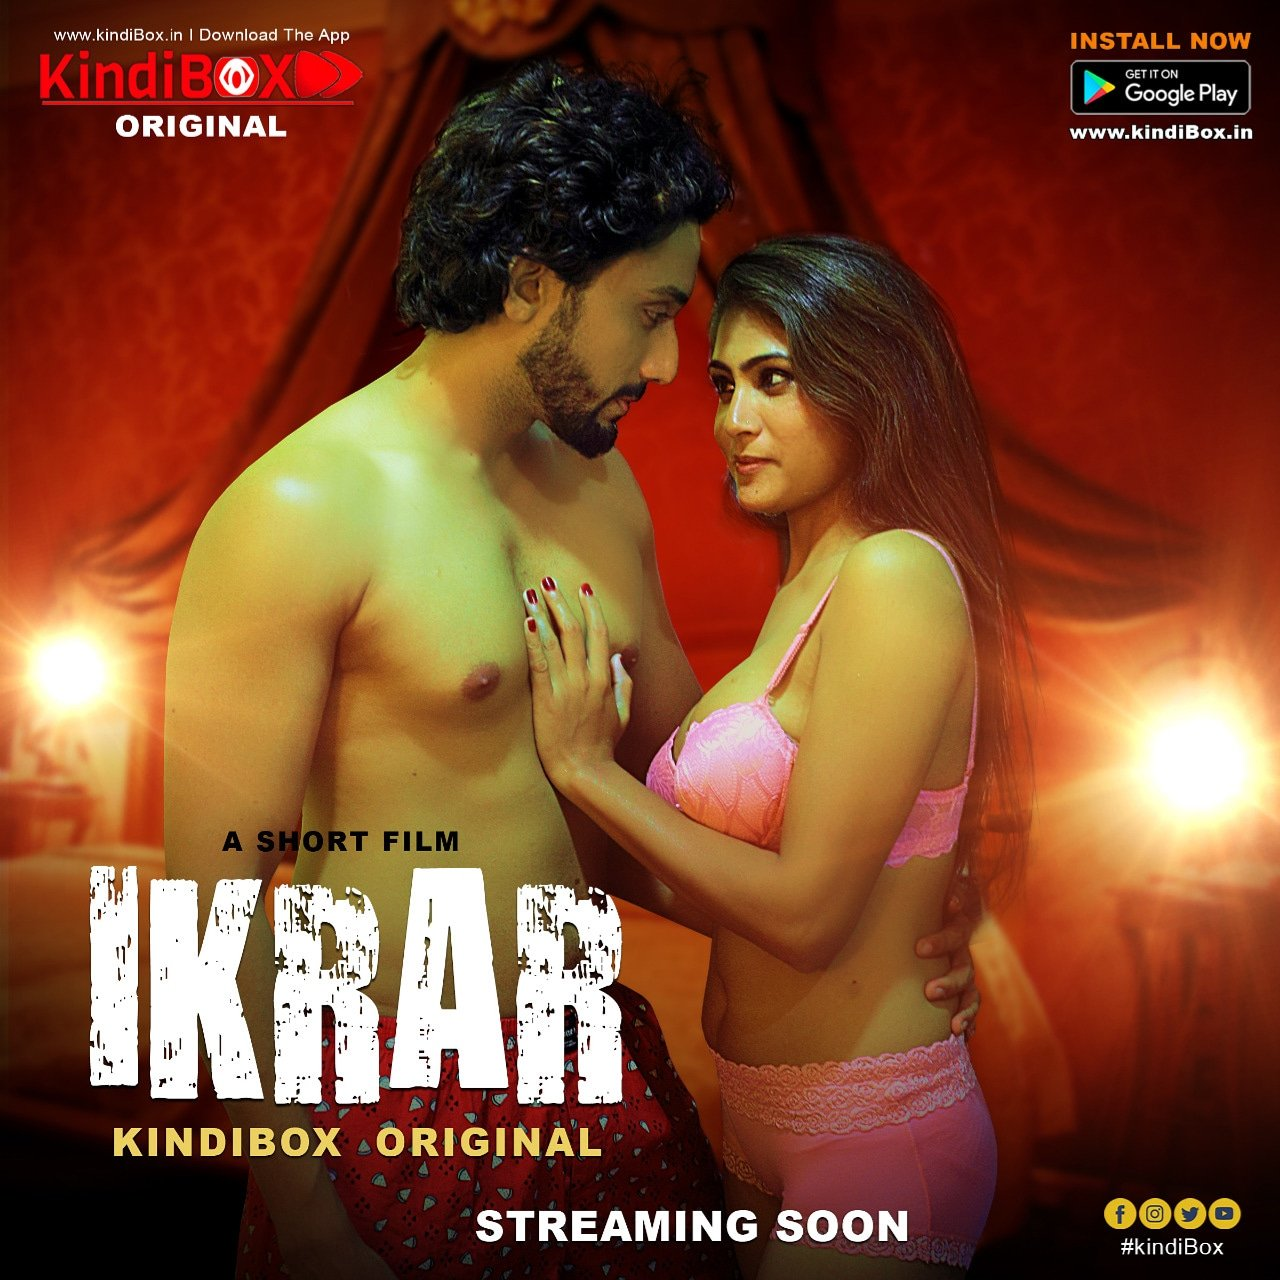 Ikrar 2020 KindiBOX Original Hindi Short Film 720p HDRip 160MB Free Download